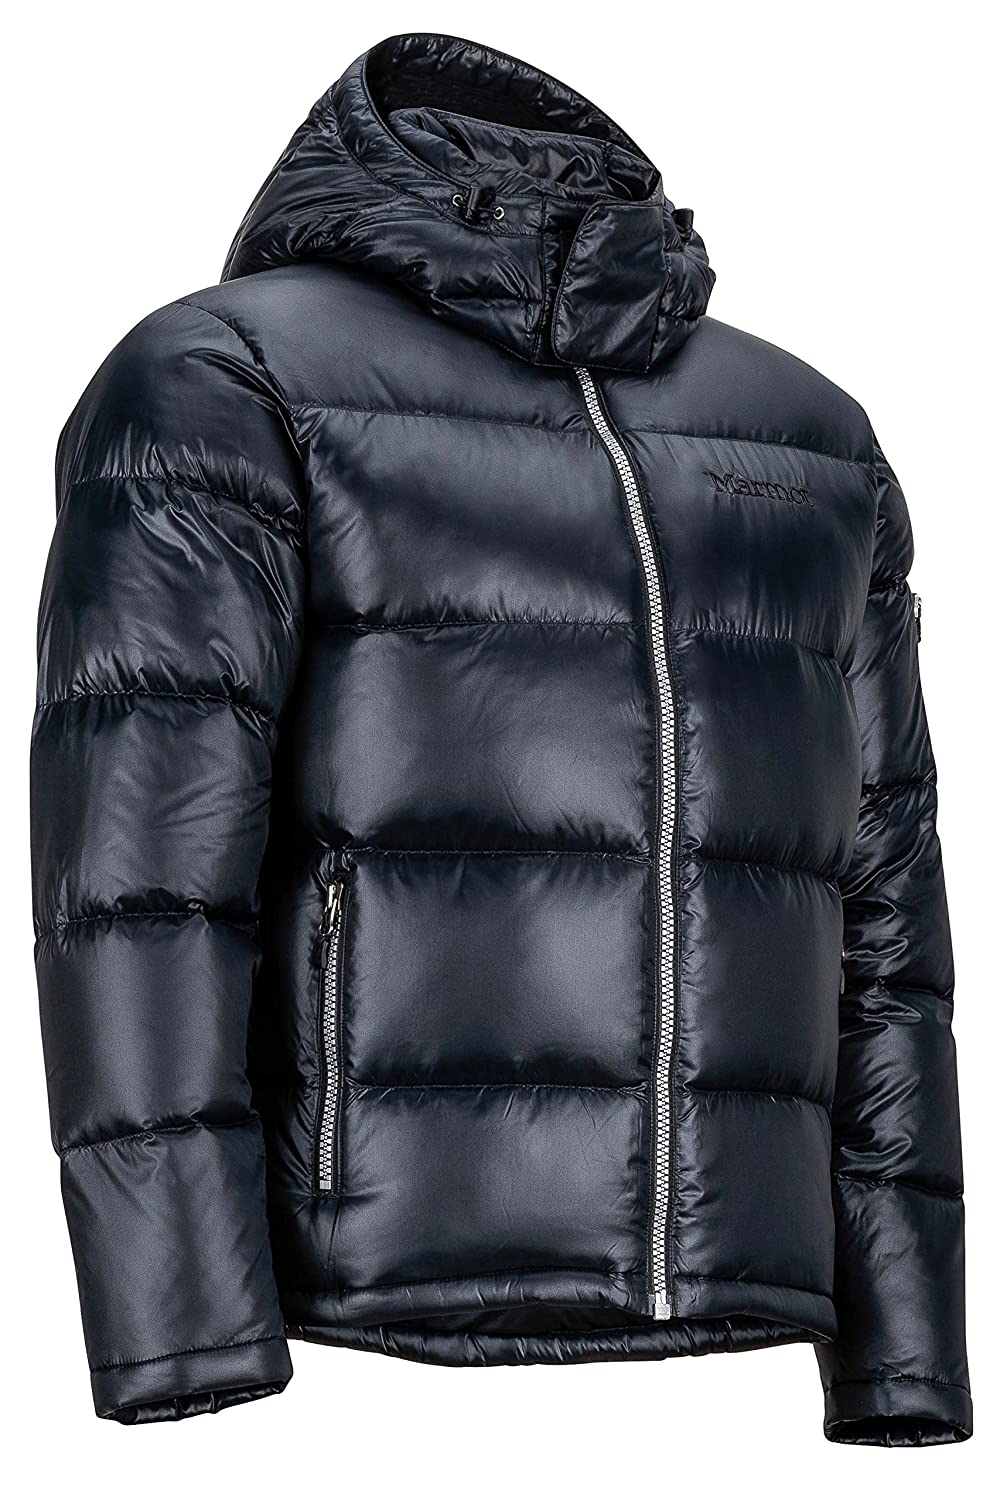 Marmot Stockholm Mens Down Puffer Jacket, Fill Power 700